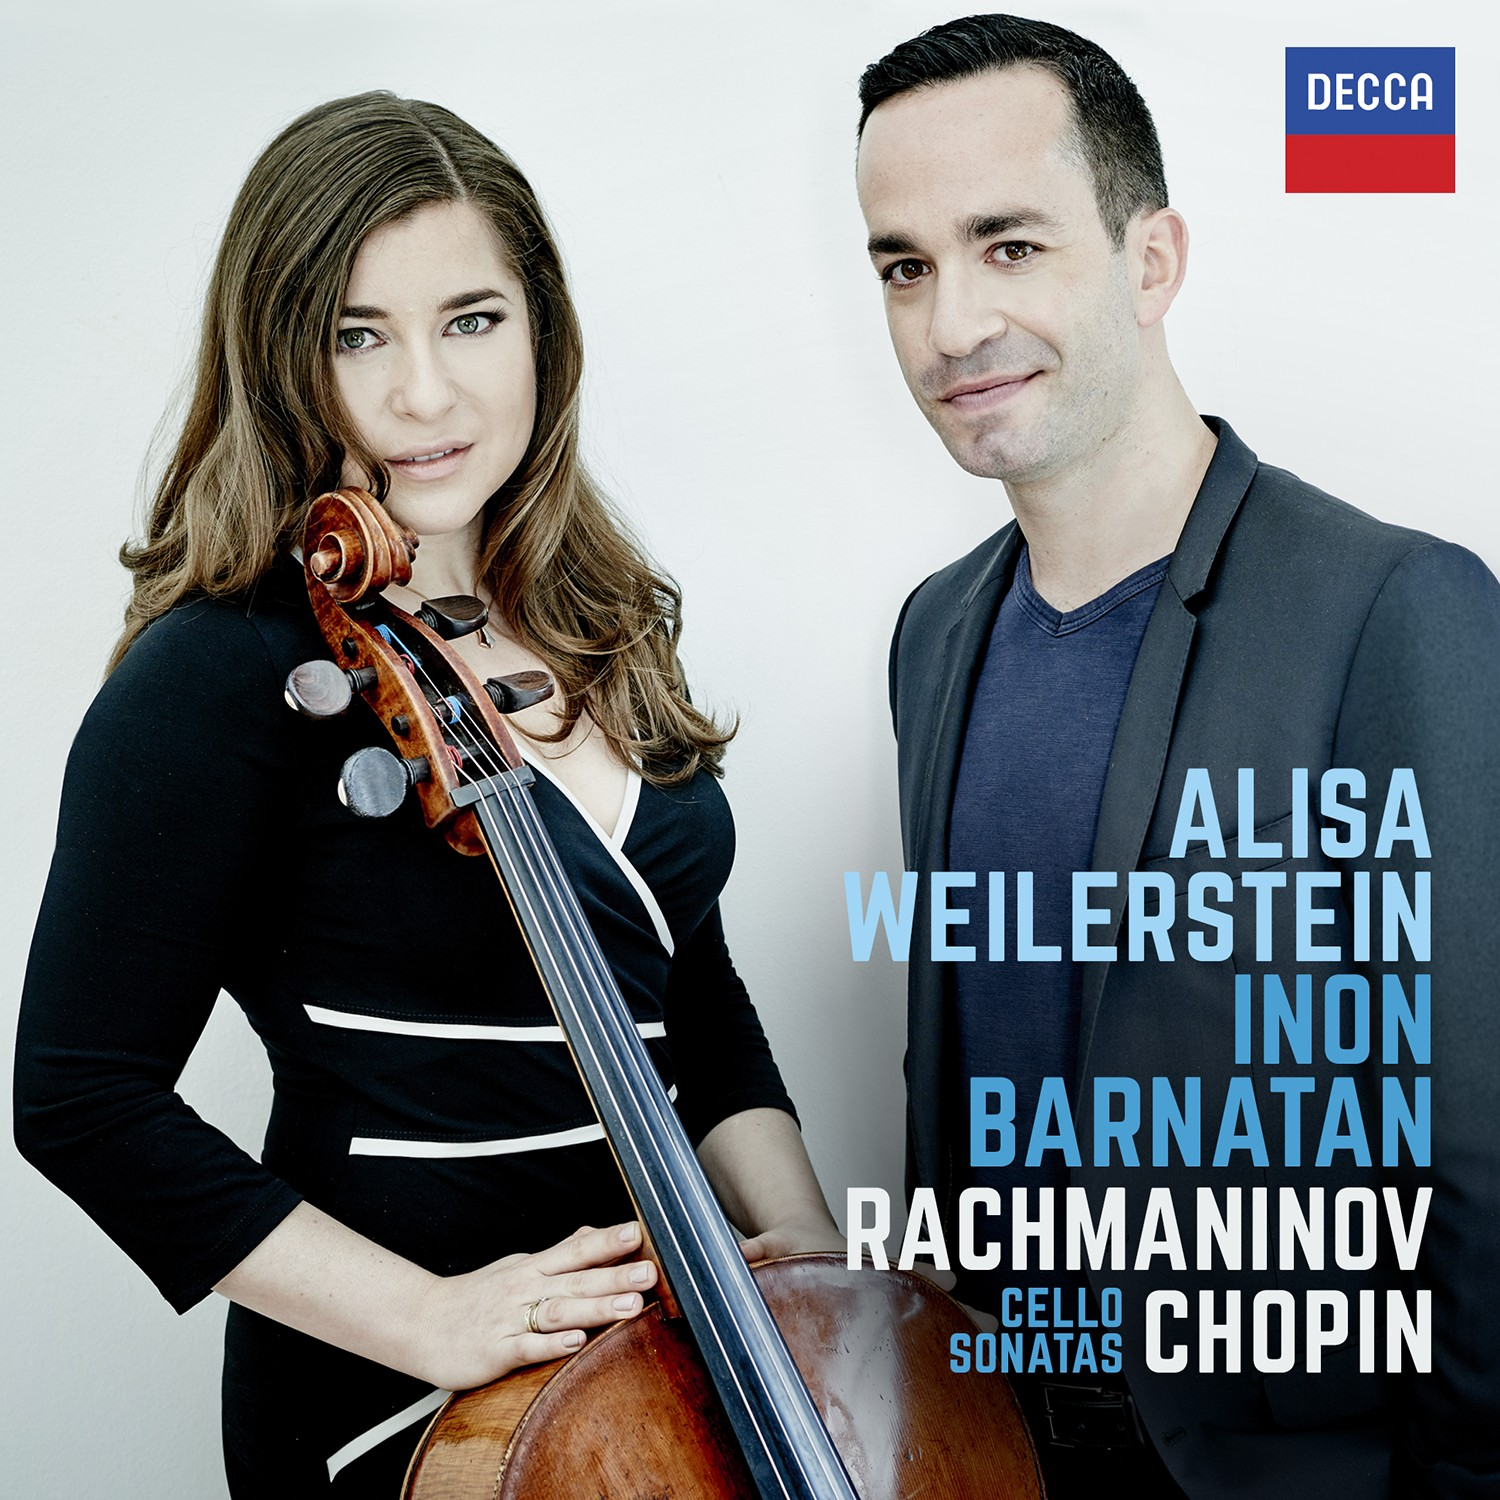 Weilerstein Barnatan Rachmaninov Chopin Cello Sonatas 2